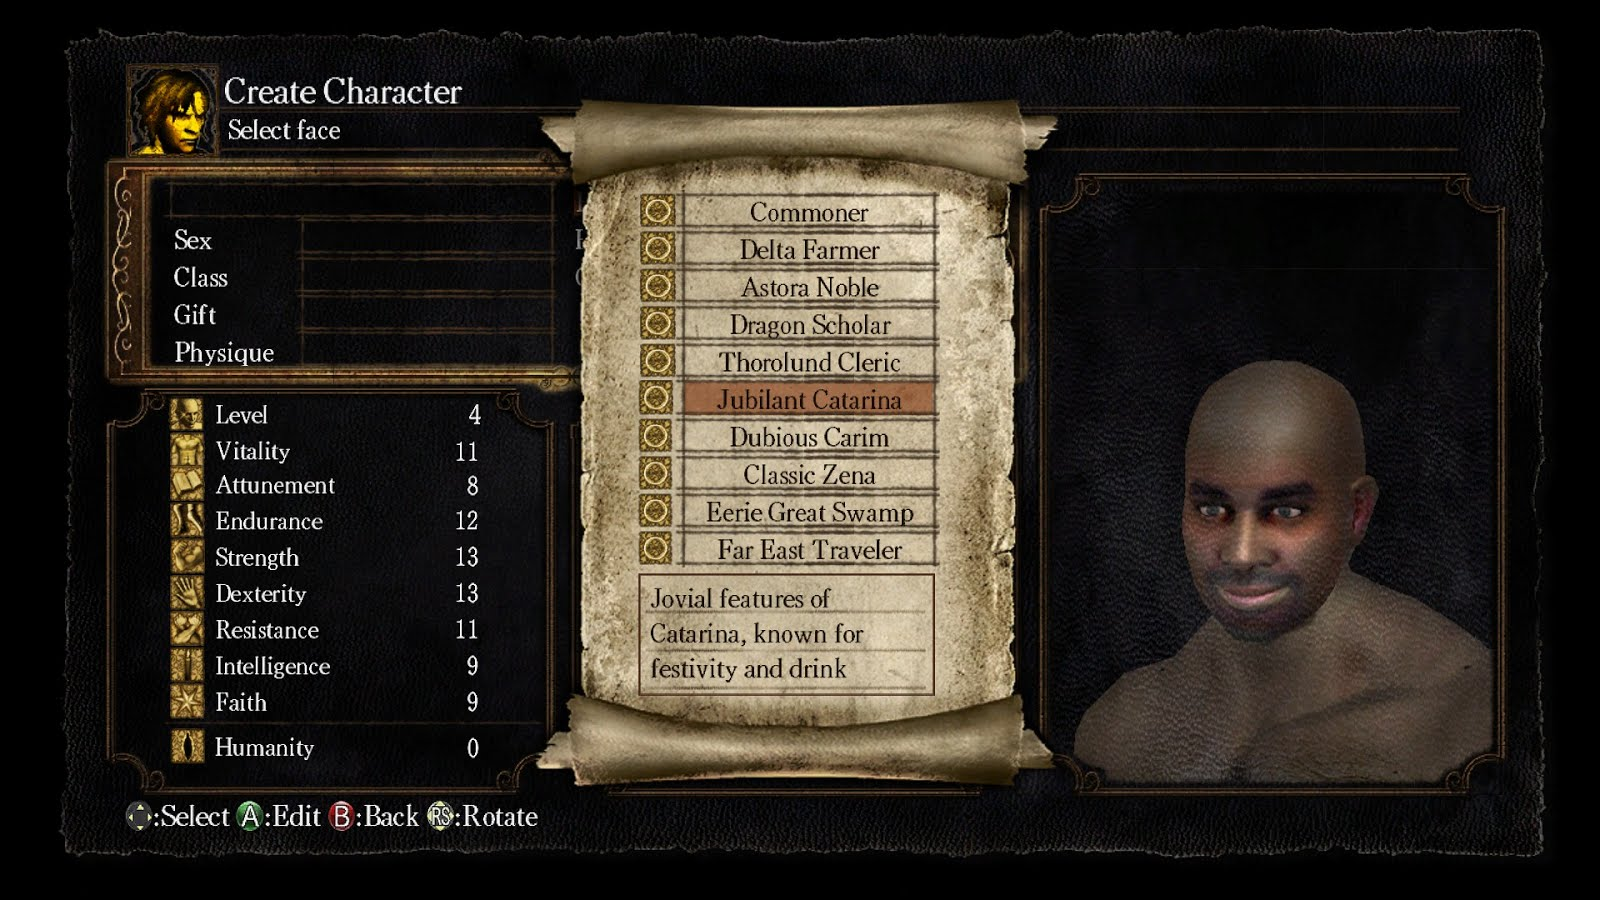 Character Creation: How does Dark Souls III Stack Up?